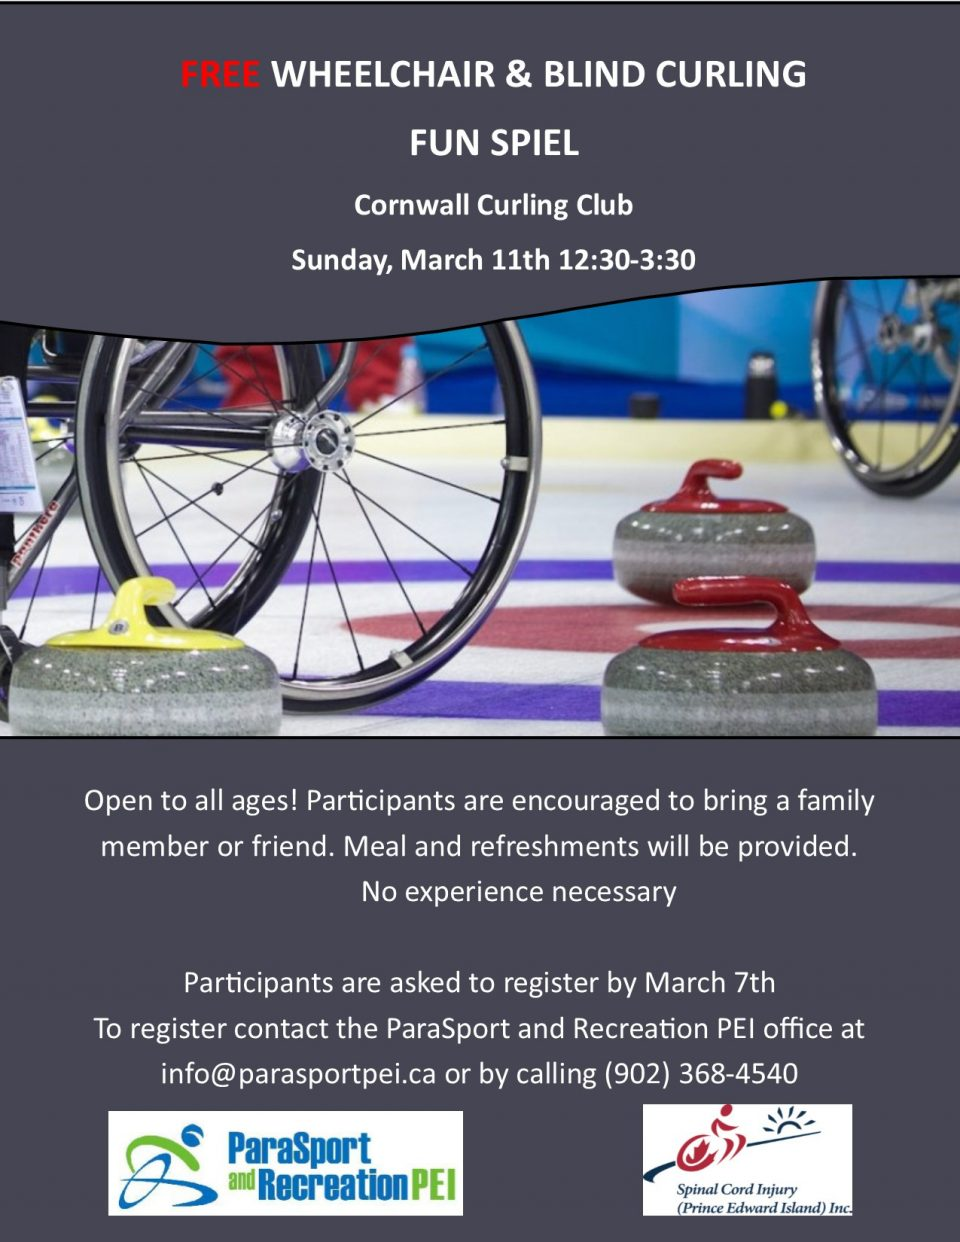 Free Wheelchair and Blind Curling Fun Spiel @ Cornwall Curling Club